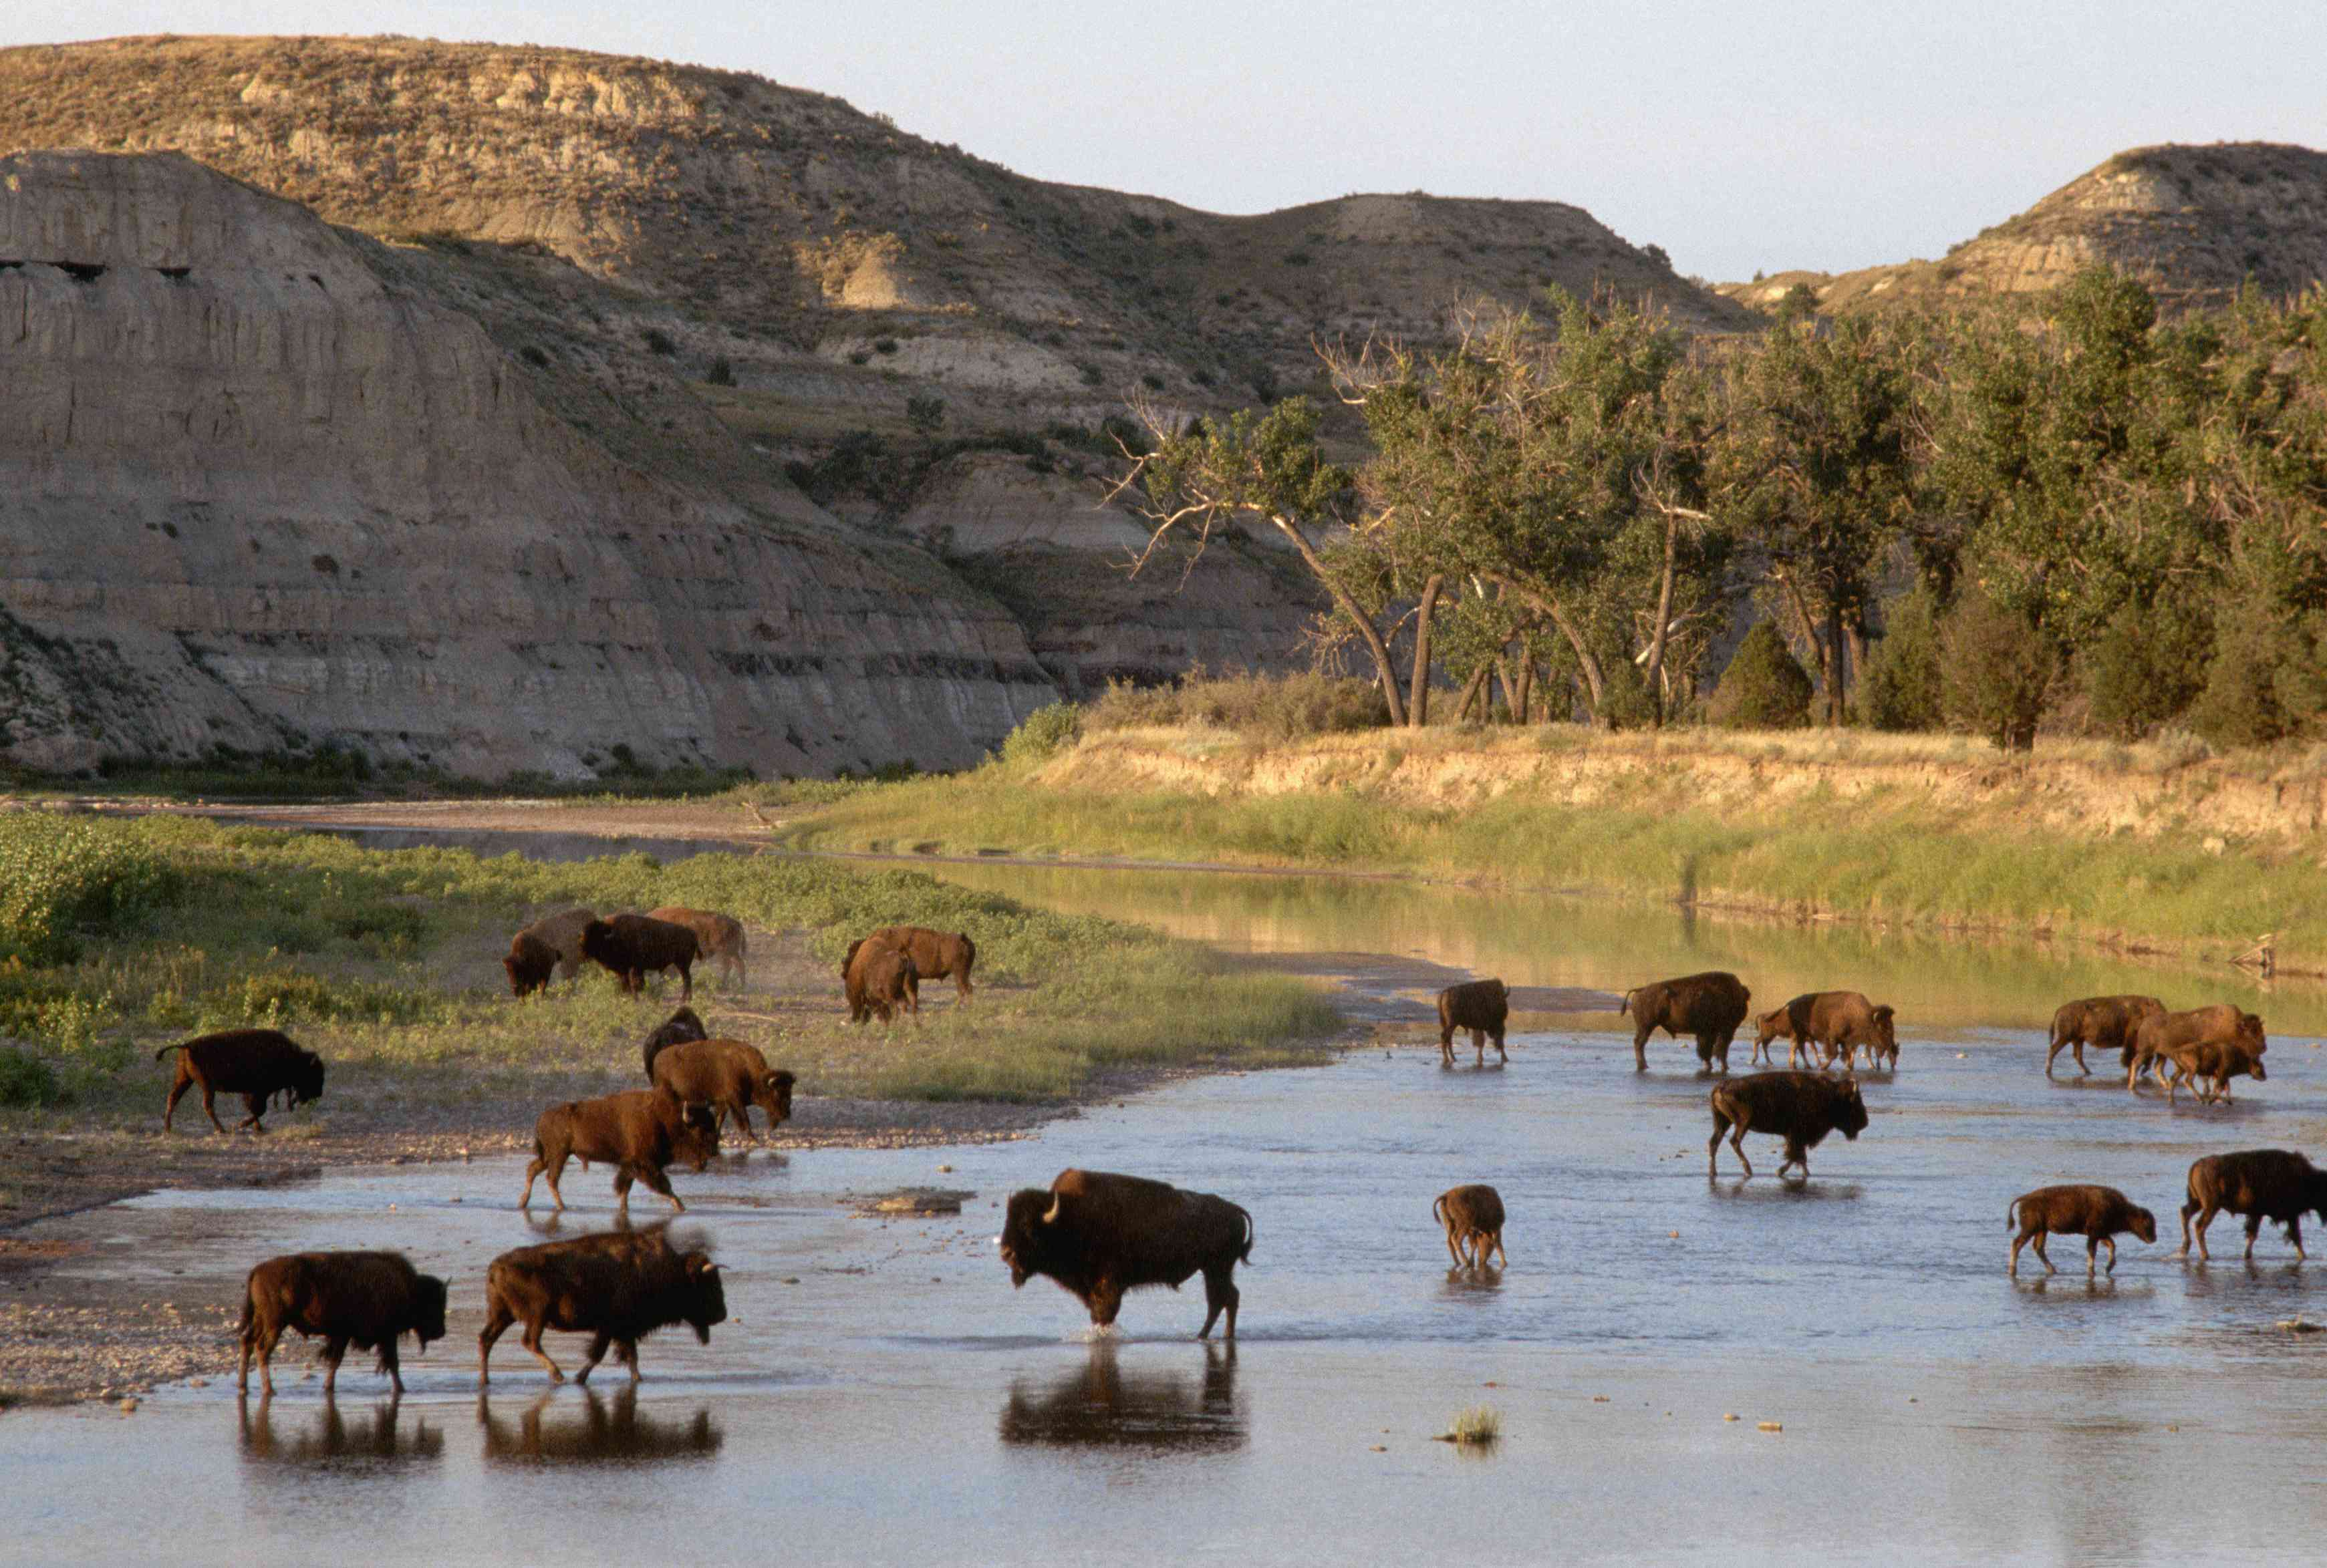 A group of bison wading in a river in front of the badlands landscape of Theodore Roosevelt National Park in North Dakota